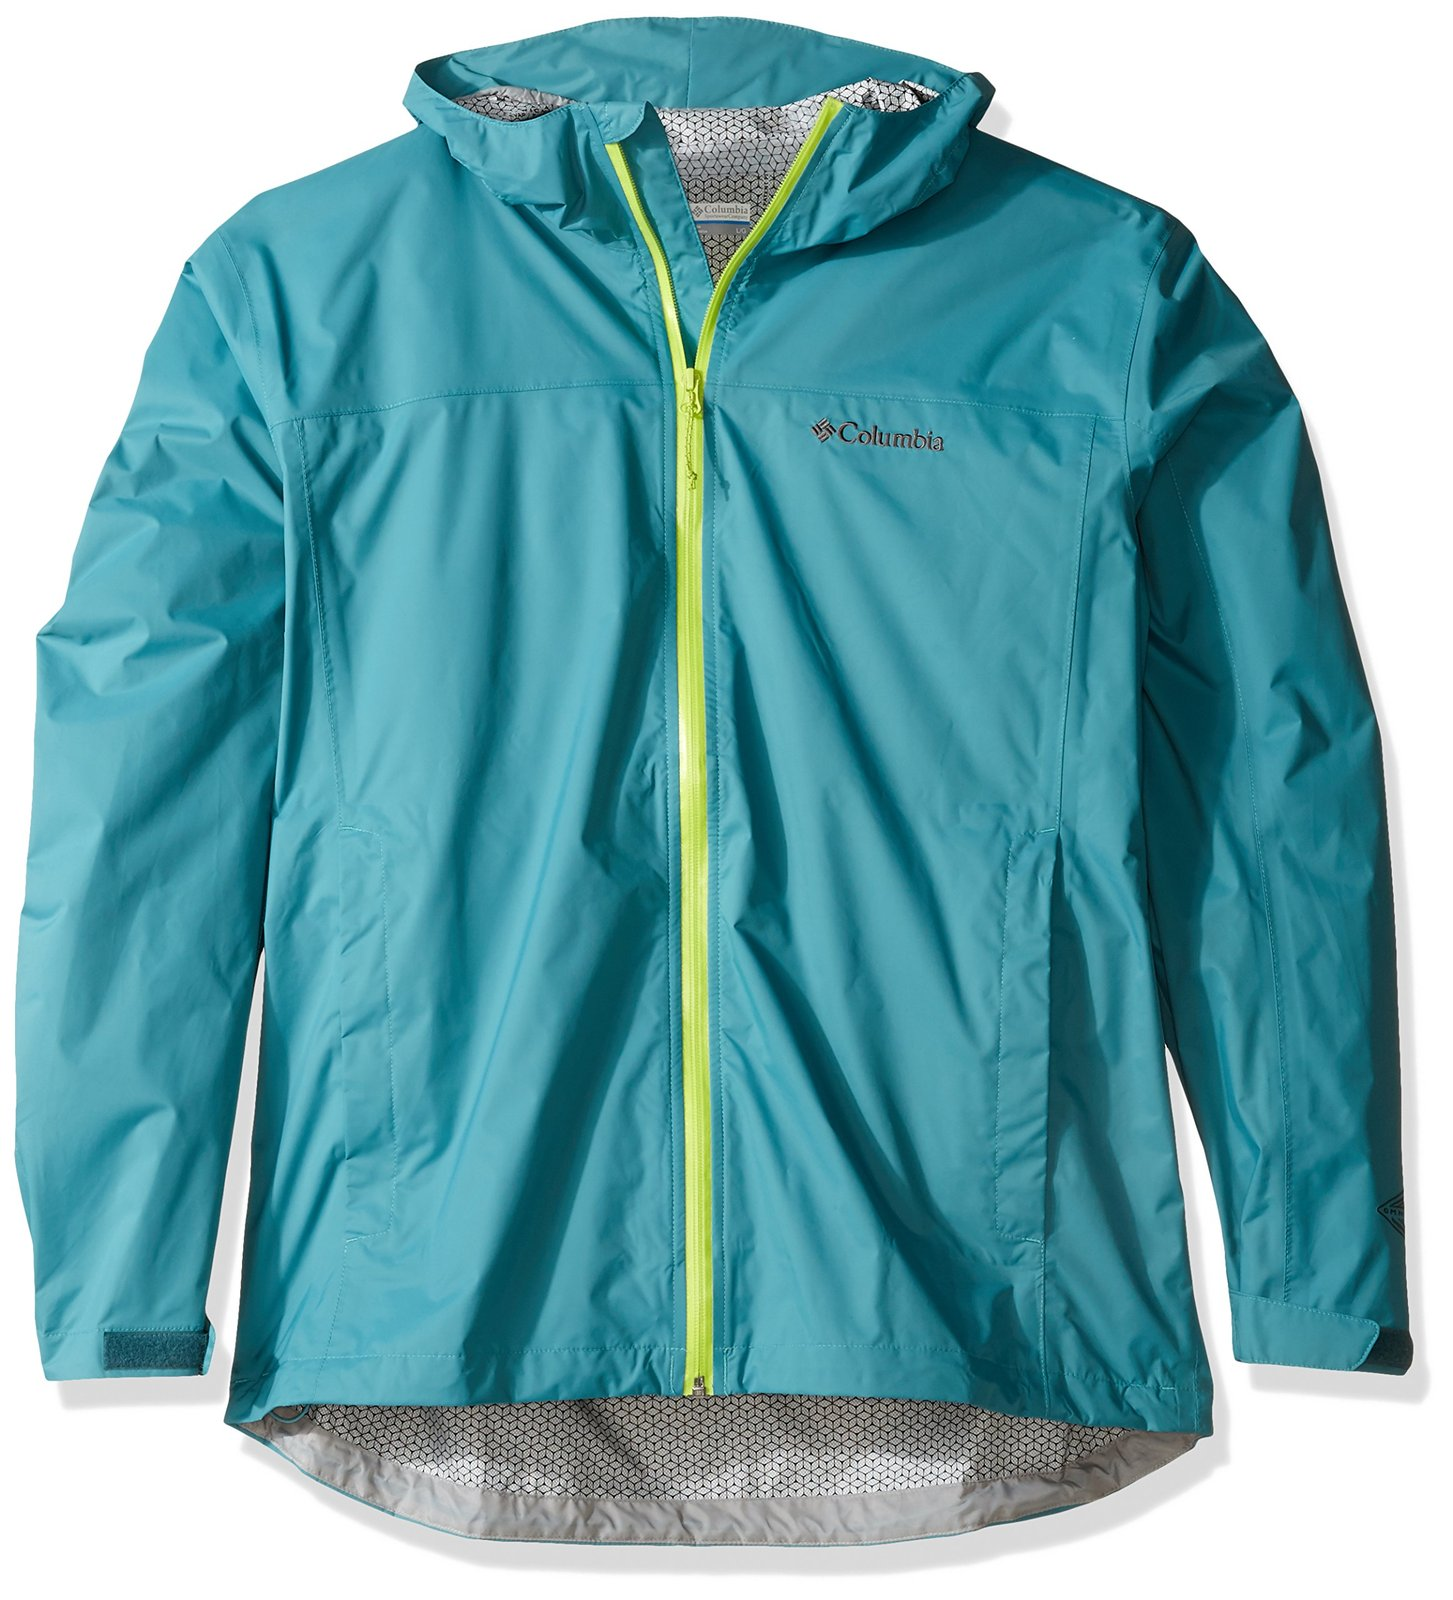 Columbia Men's Evapouration Jacket, Teal, Large